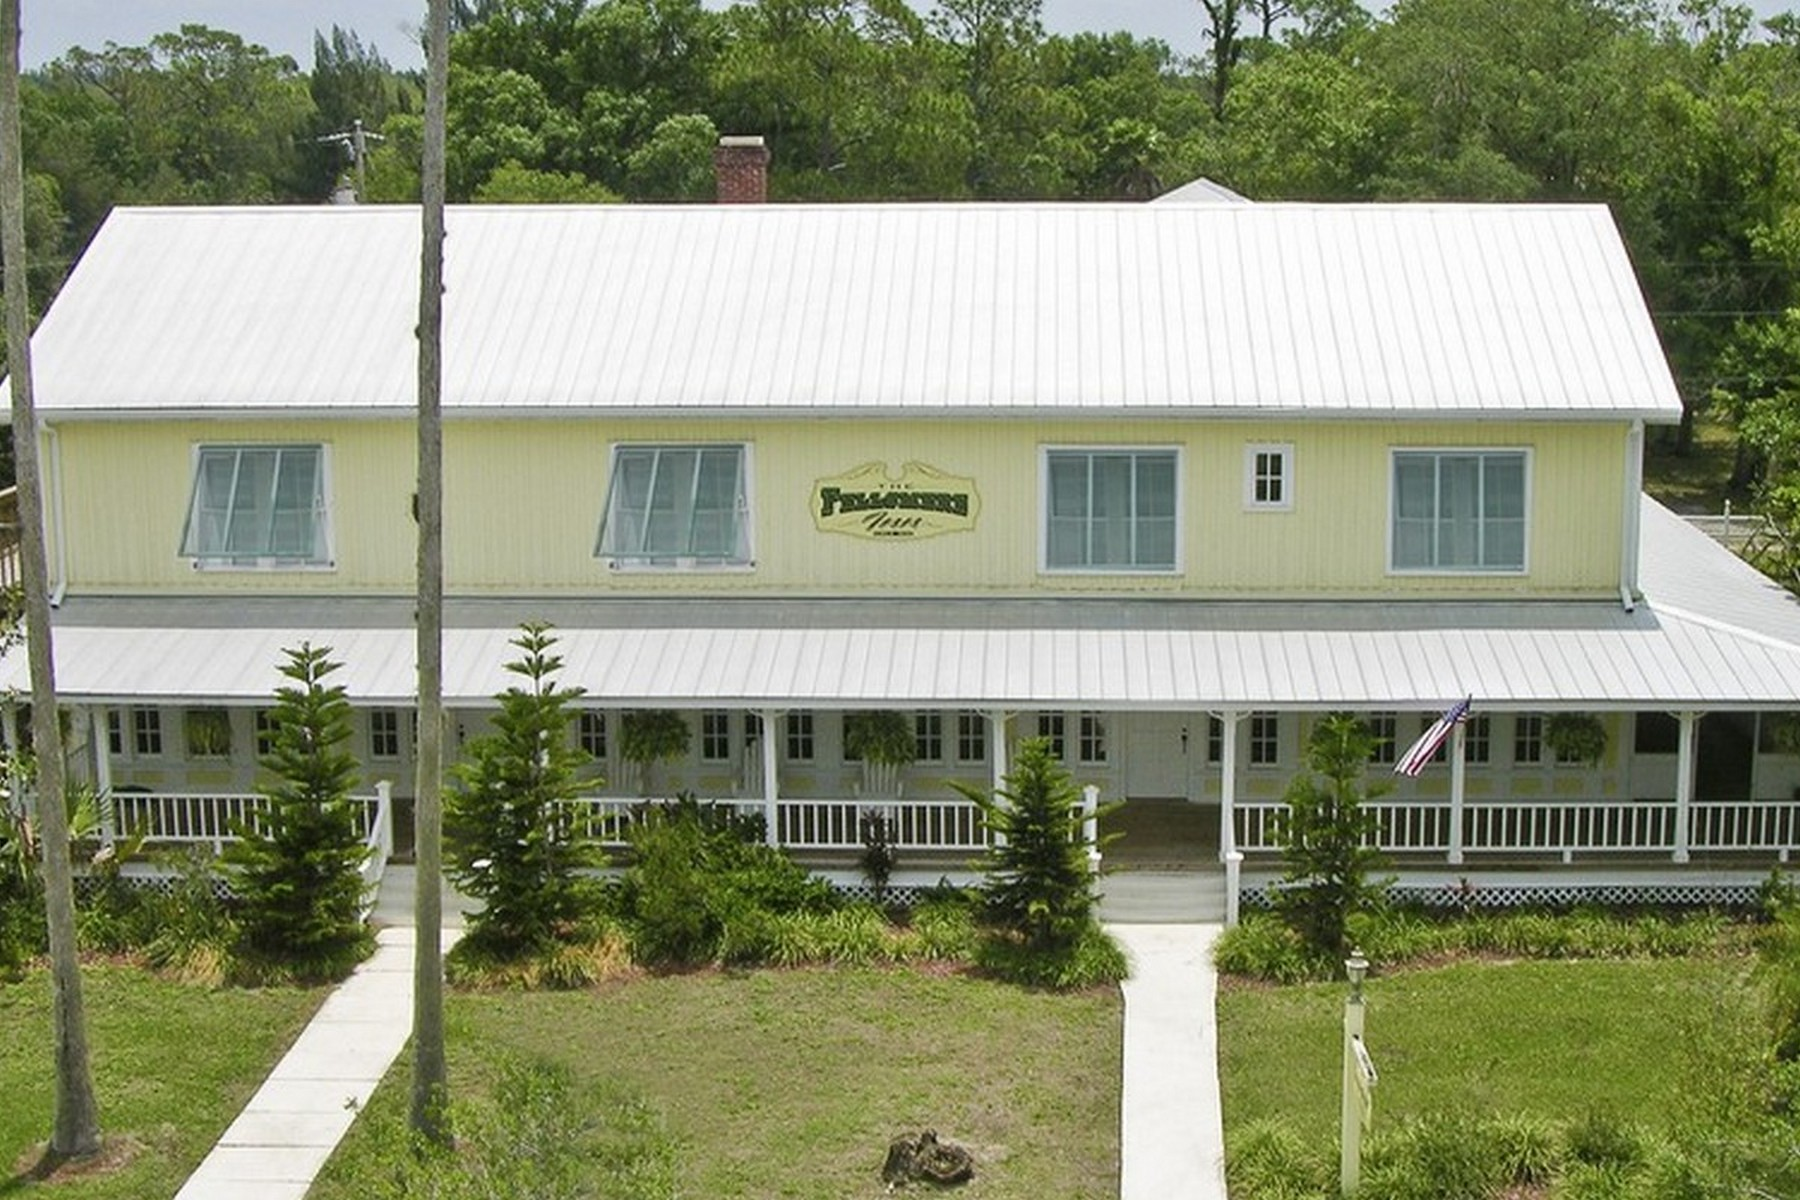 Additional photo for property listing at The Fellsmere Inn 107 N Broadway Street Fellsmere, Florida 32948 United States